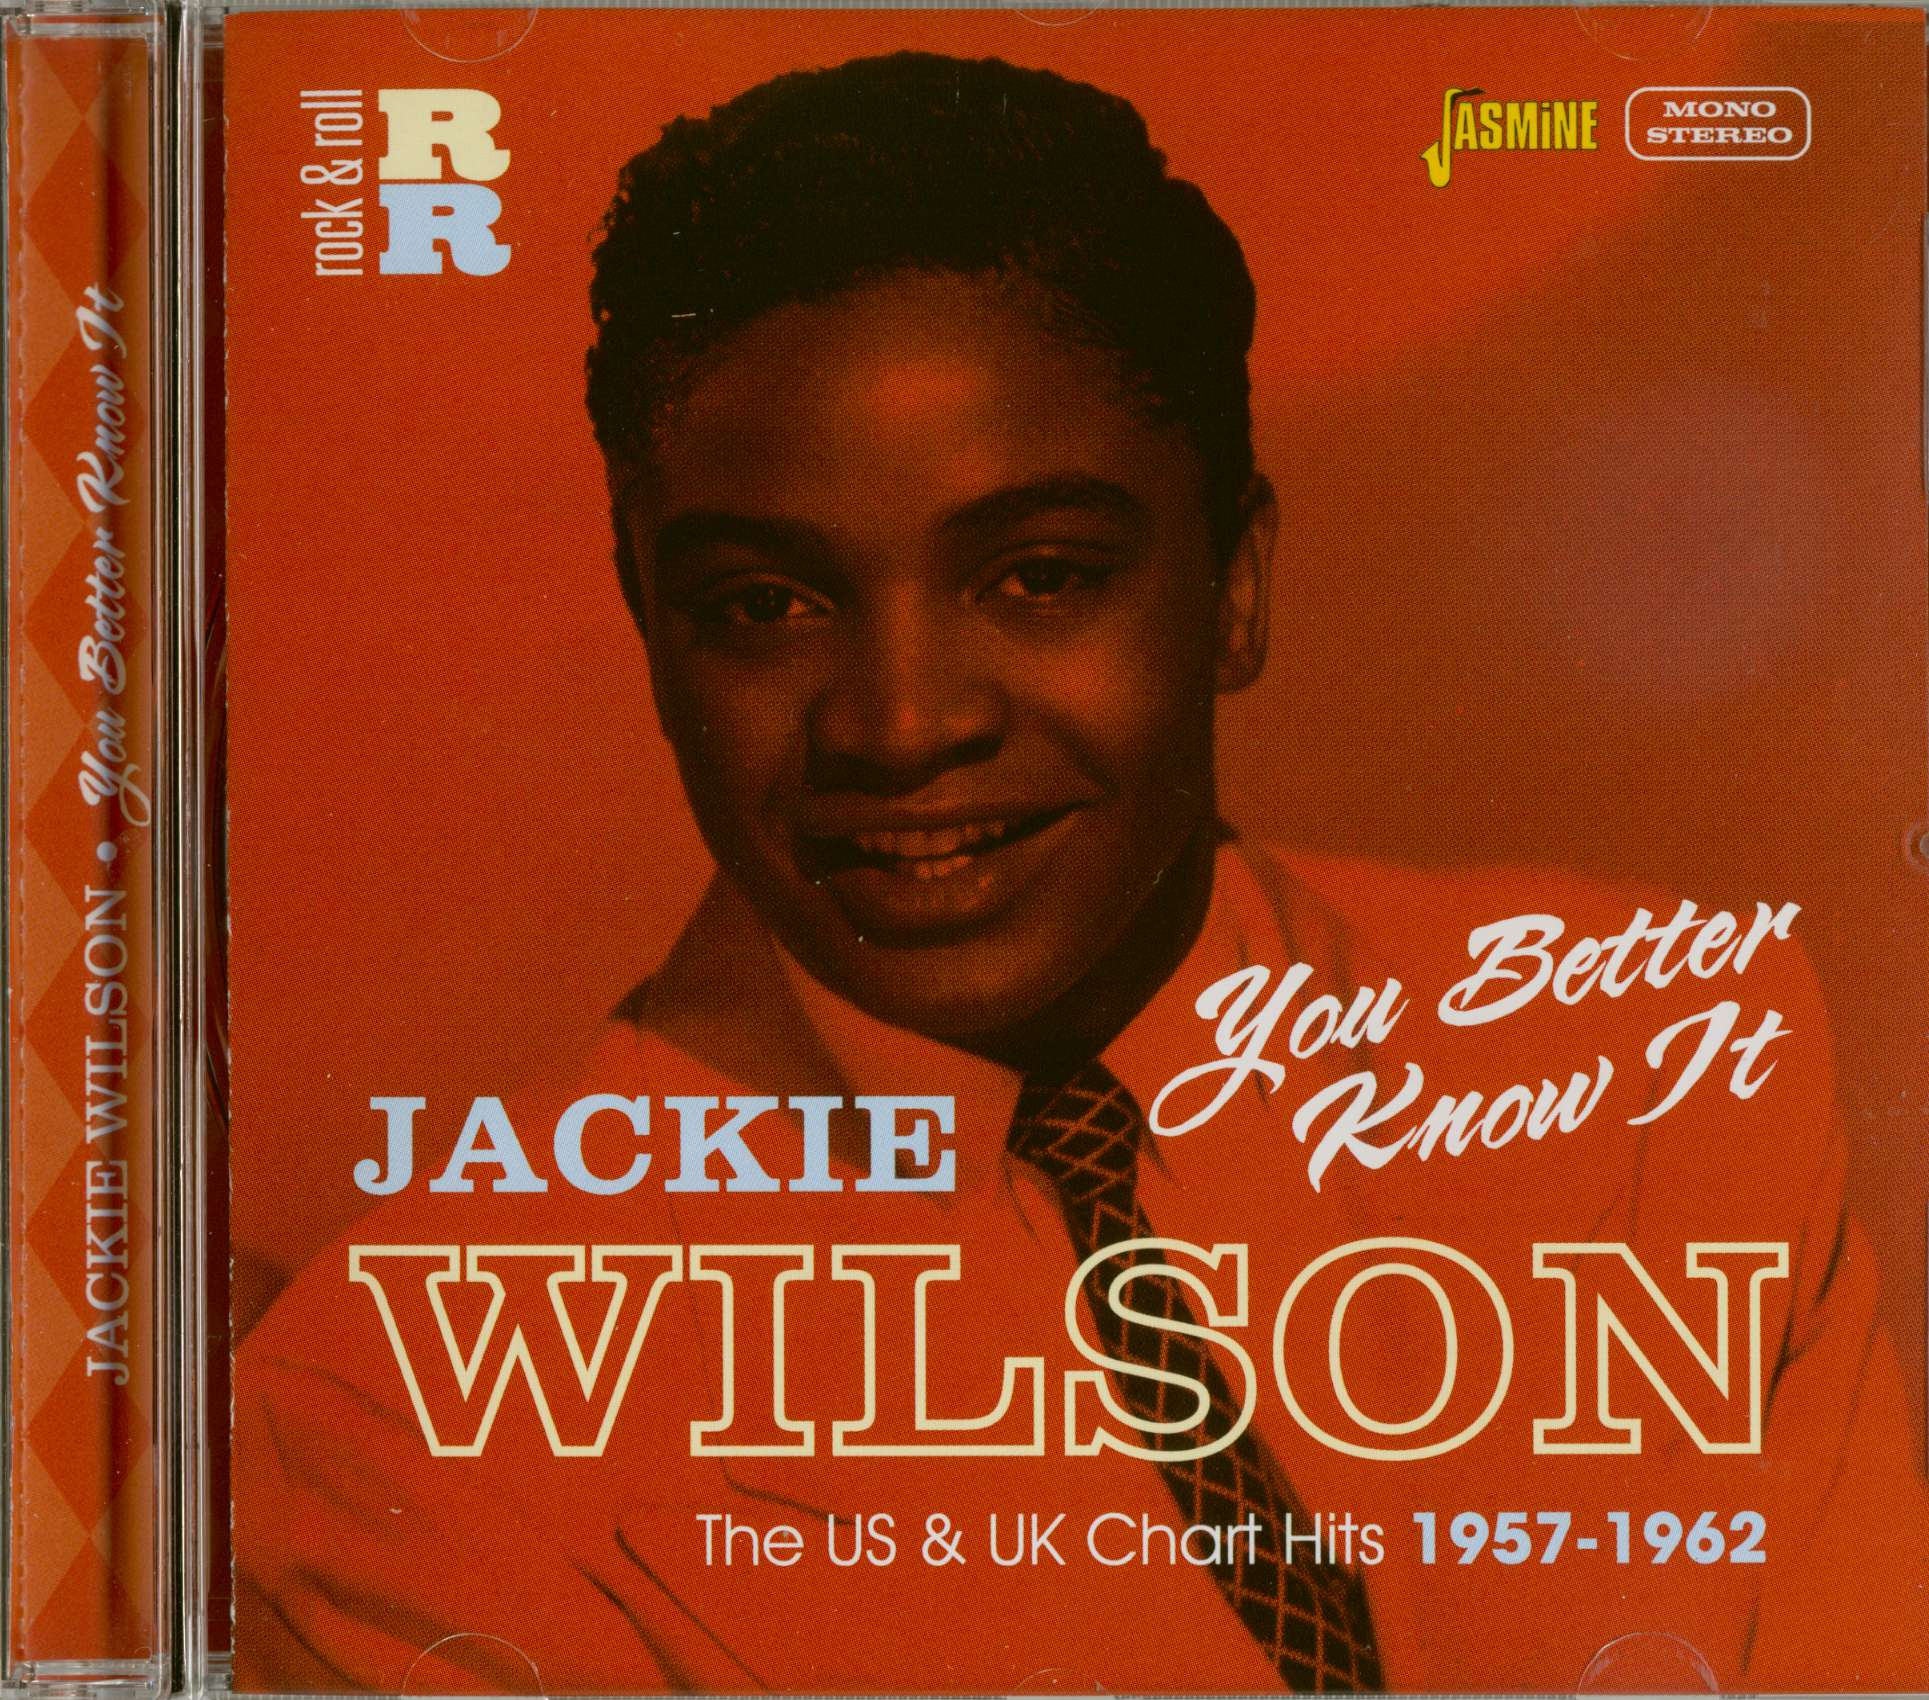 Jackie Wilson CD: You Better Know It - Bear Family Records